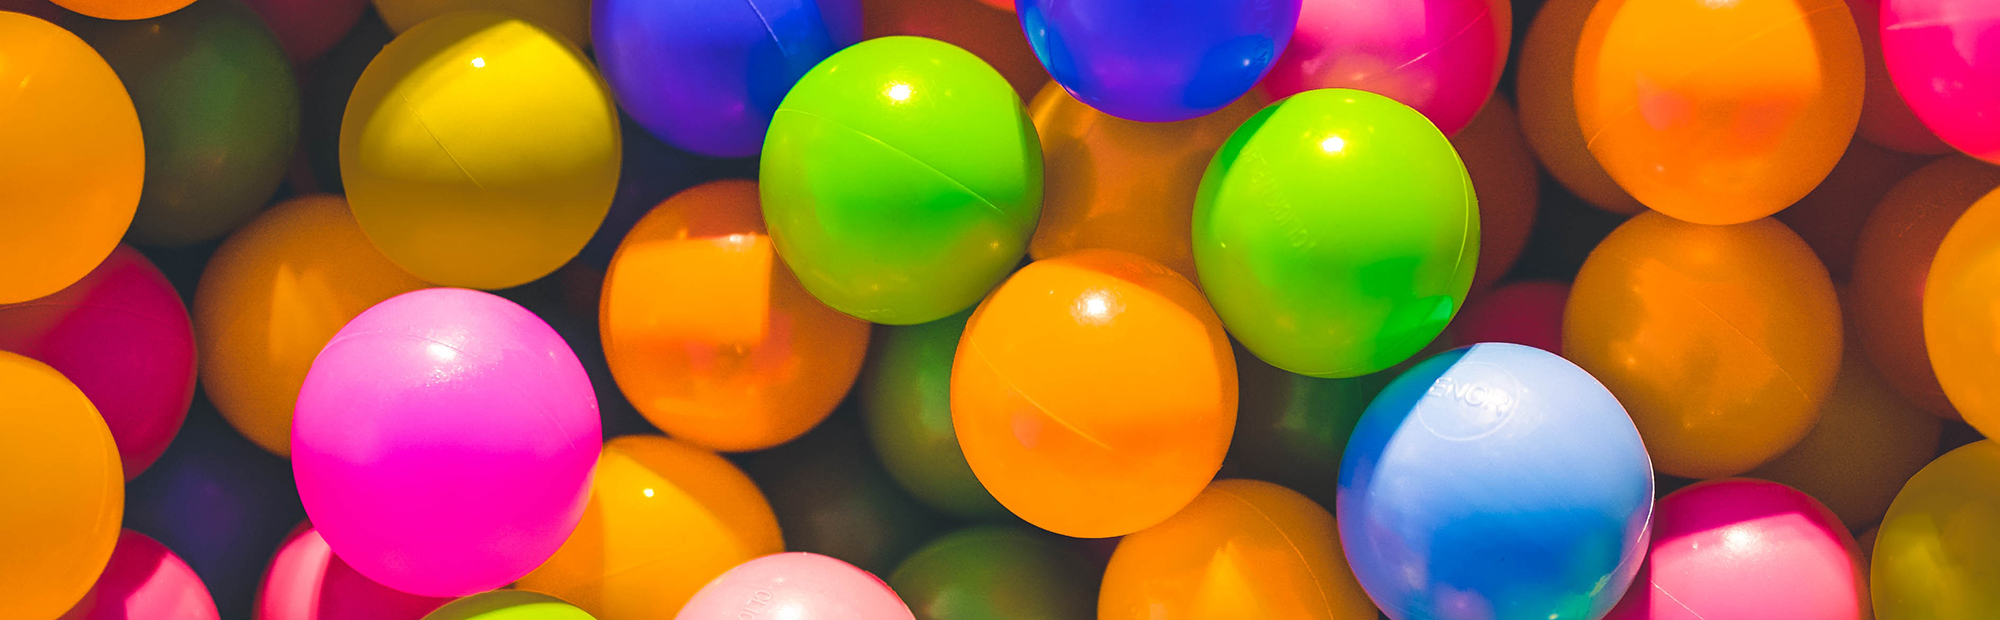 Banner image – colourful toy balls, the kind that would be in a ball pit for kids to play in.